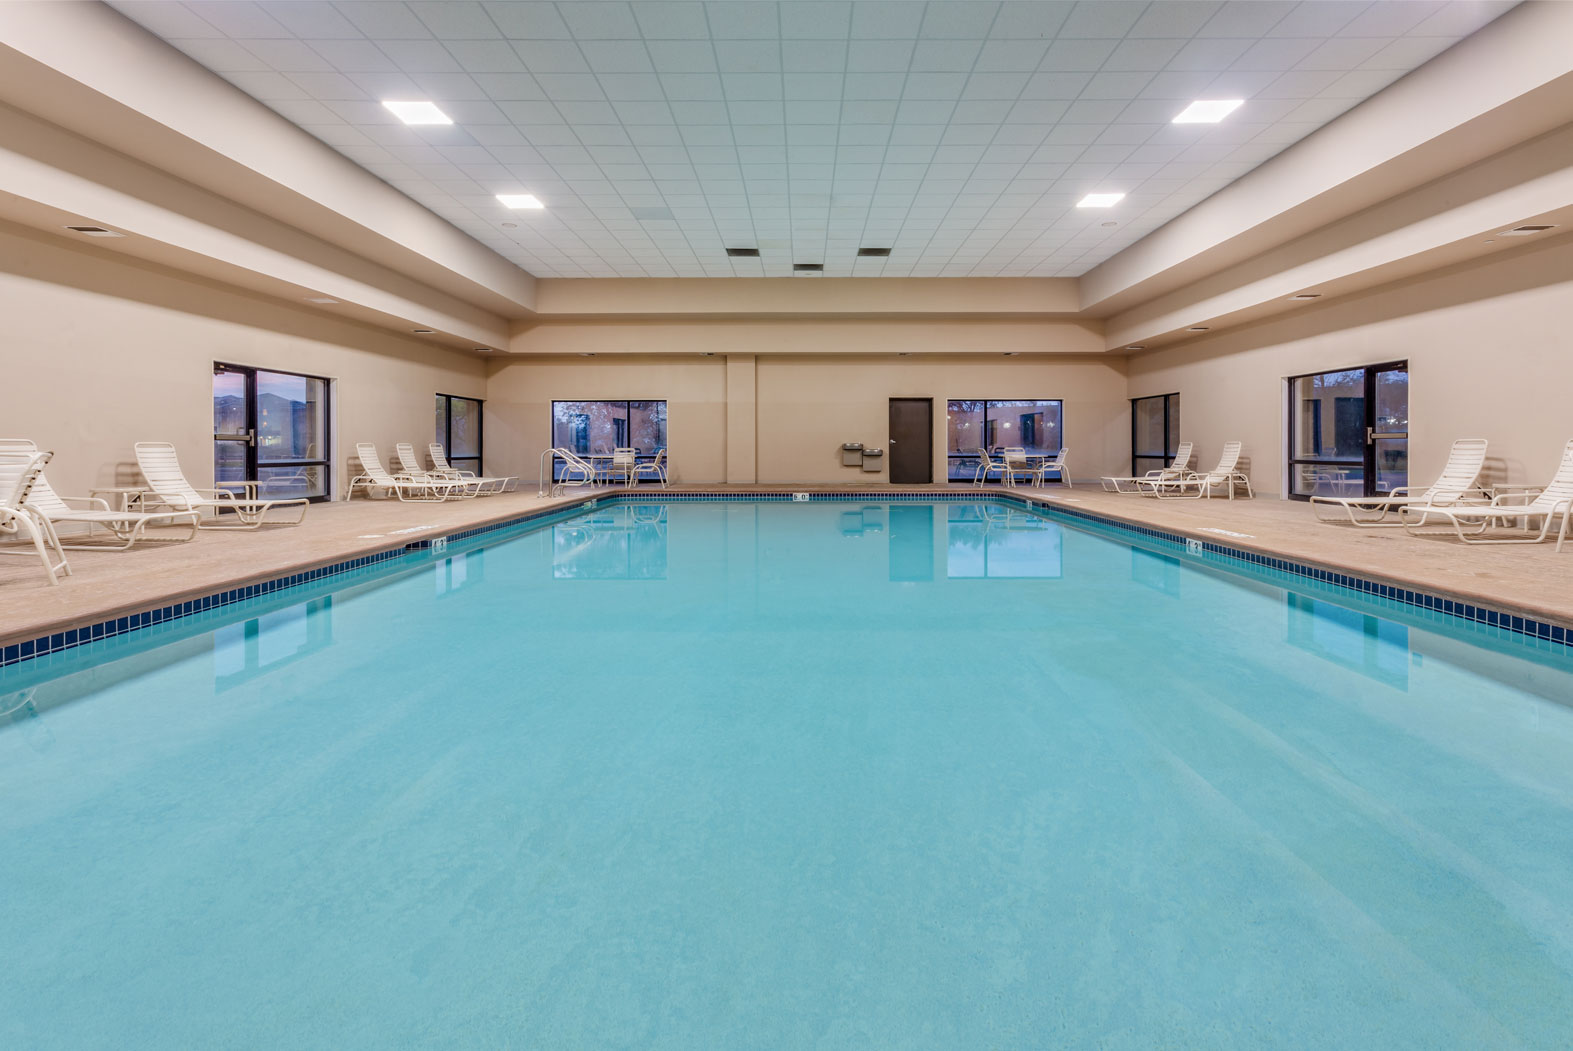 crowne plaza milwaukee indoor pool